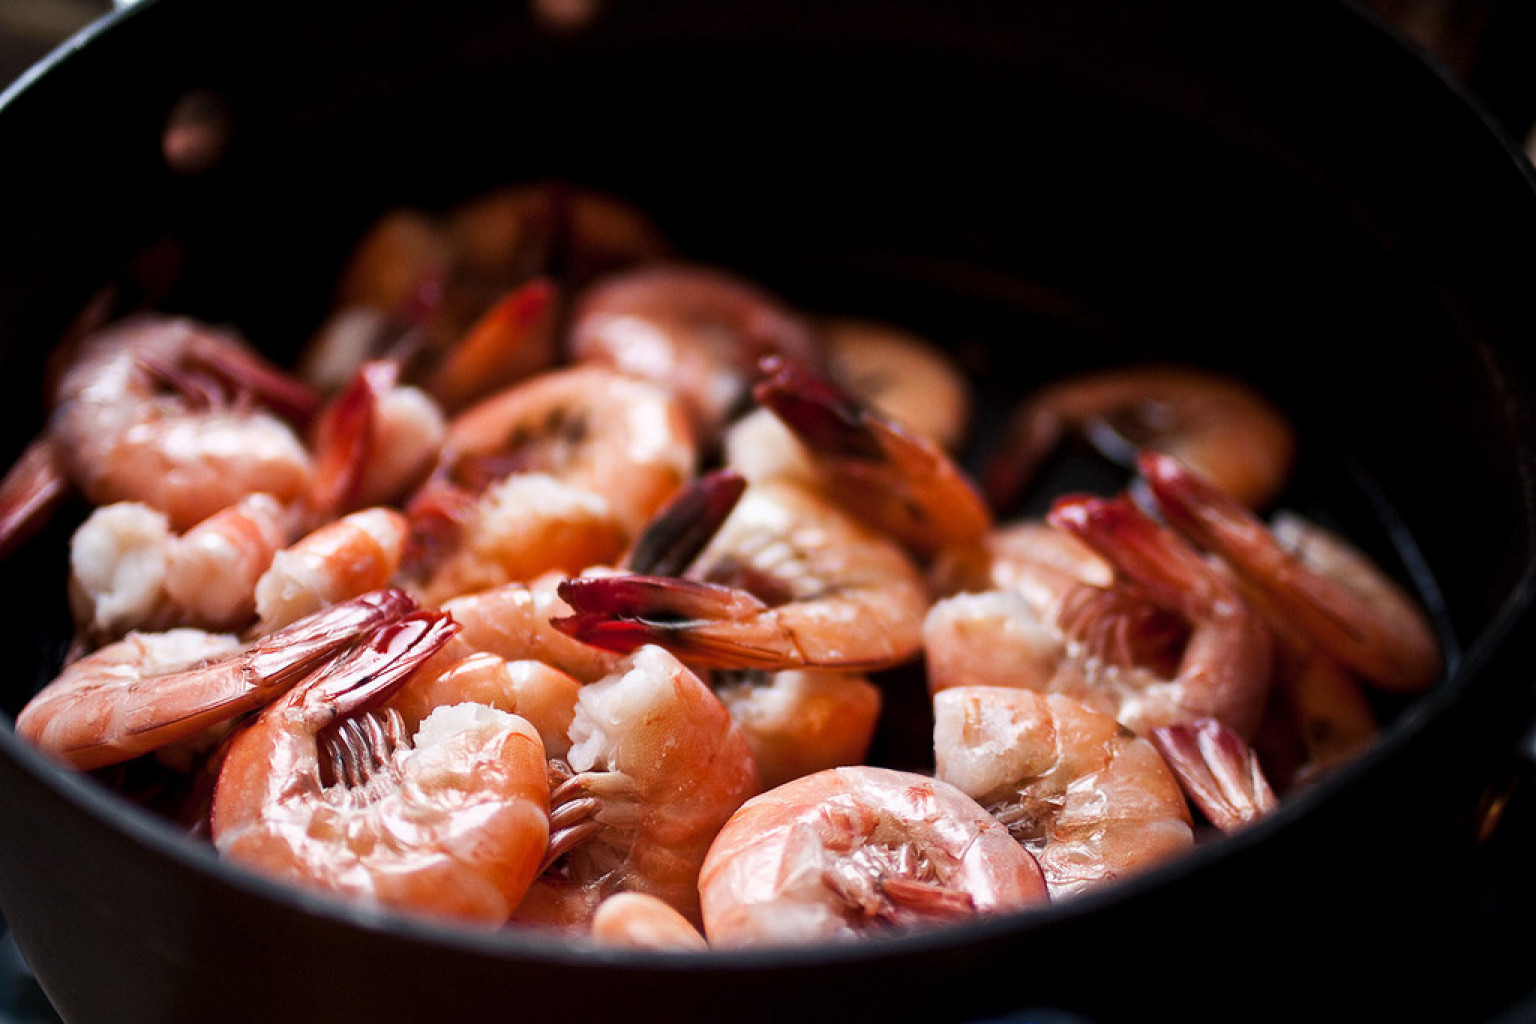 How To Cook Shrimp And Mistakes To Avoid (PHOTOS) | HuffPost